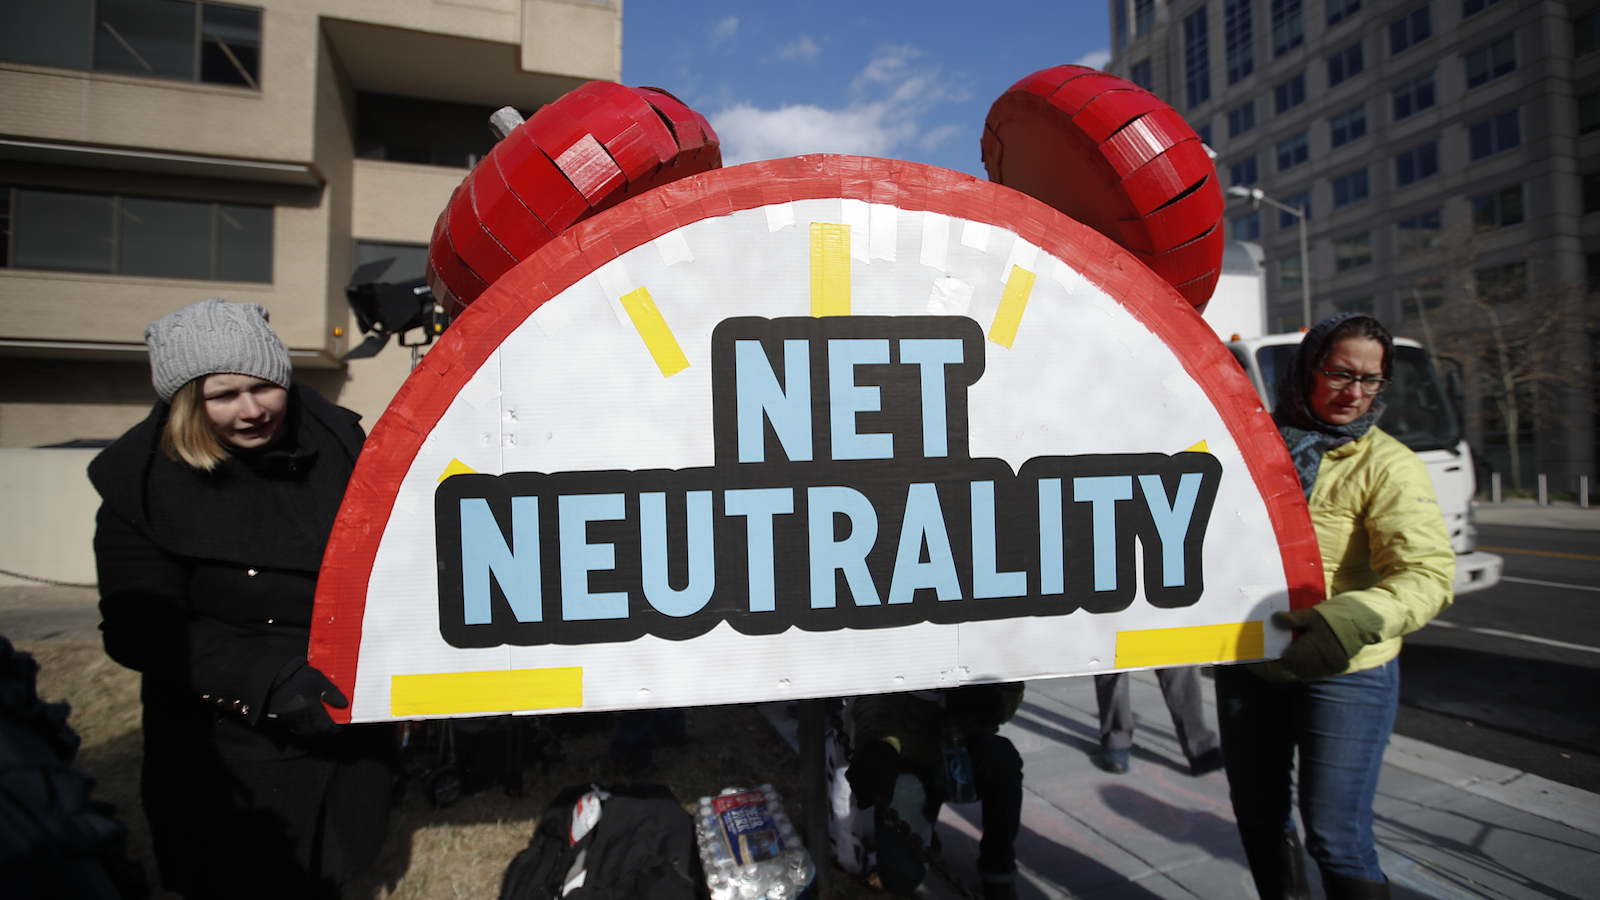 Obama-era net neutrality has ended: What does it mean for you?